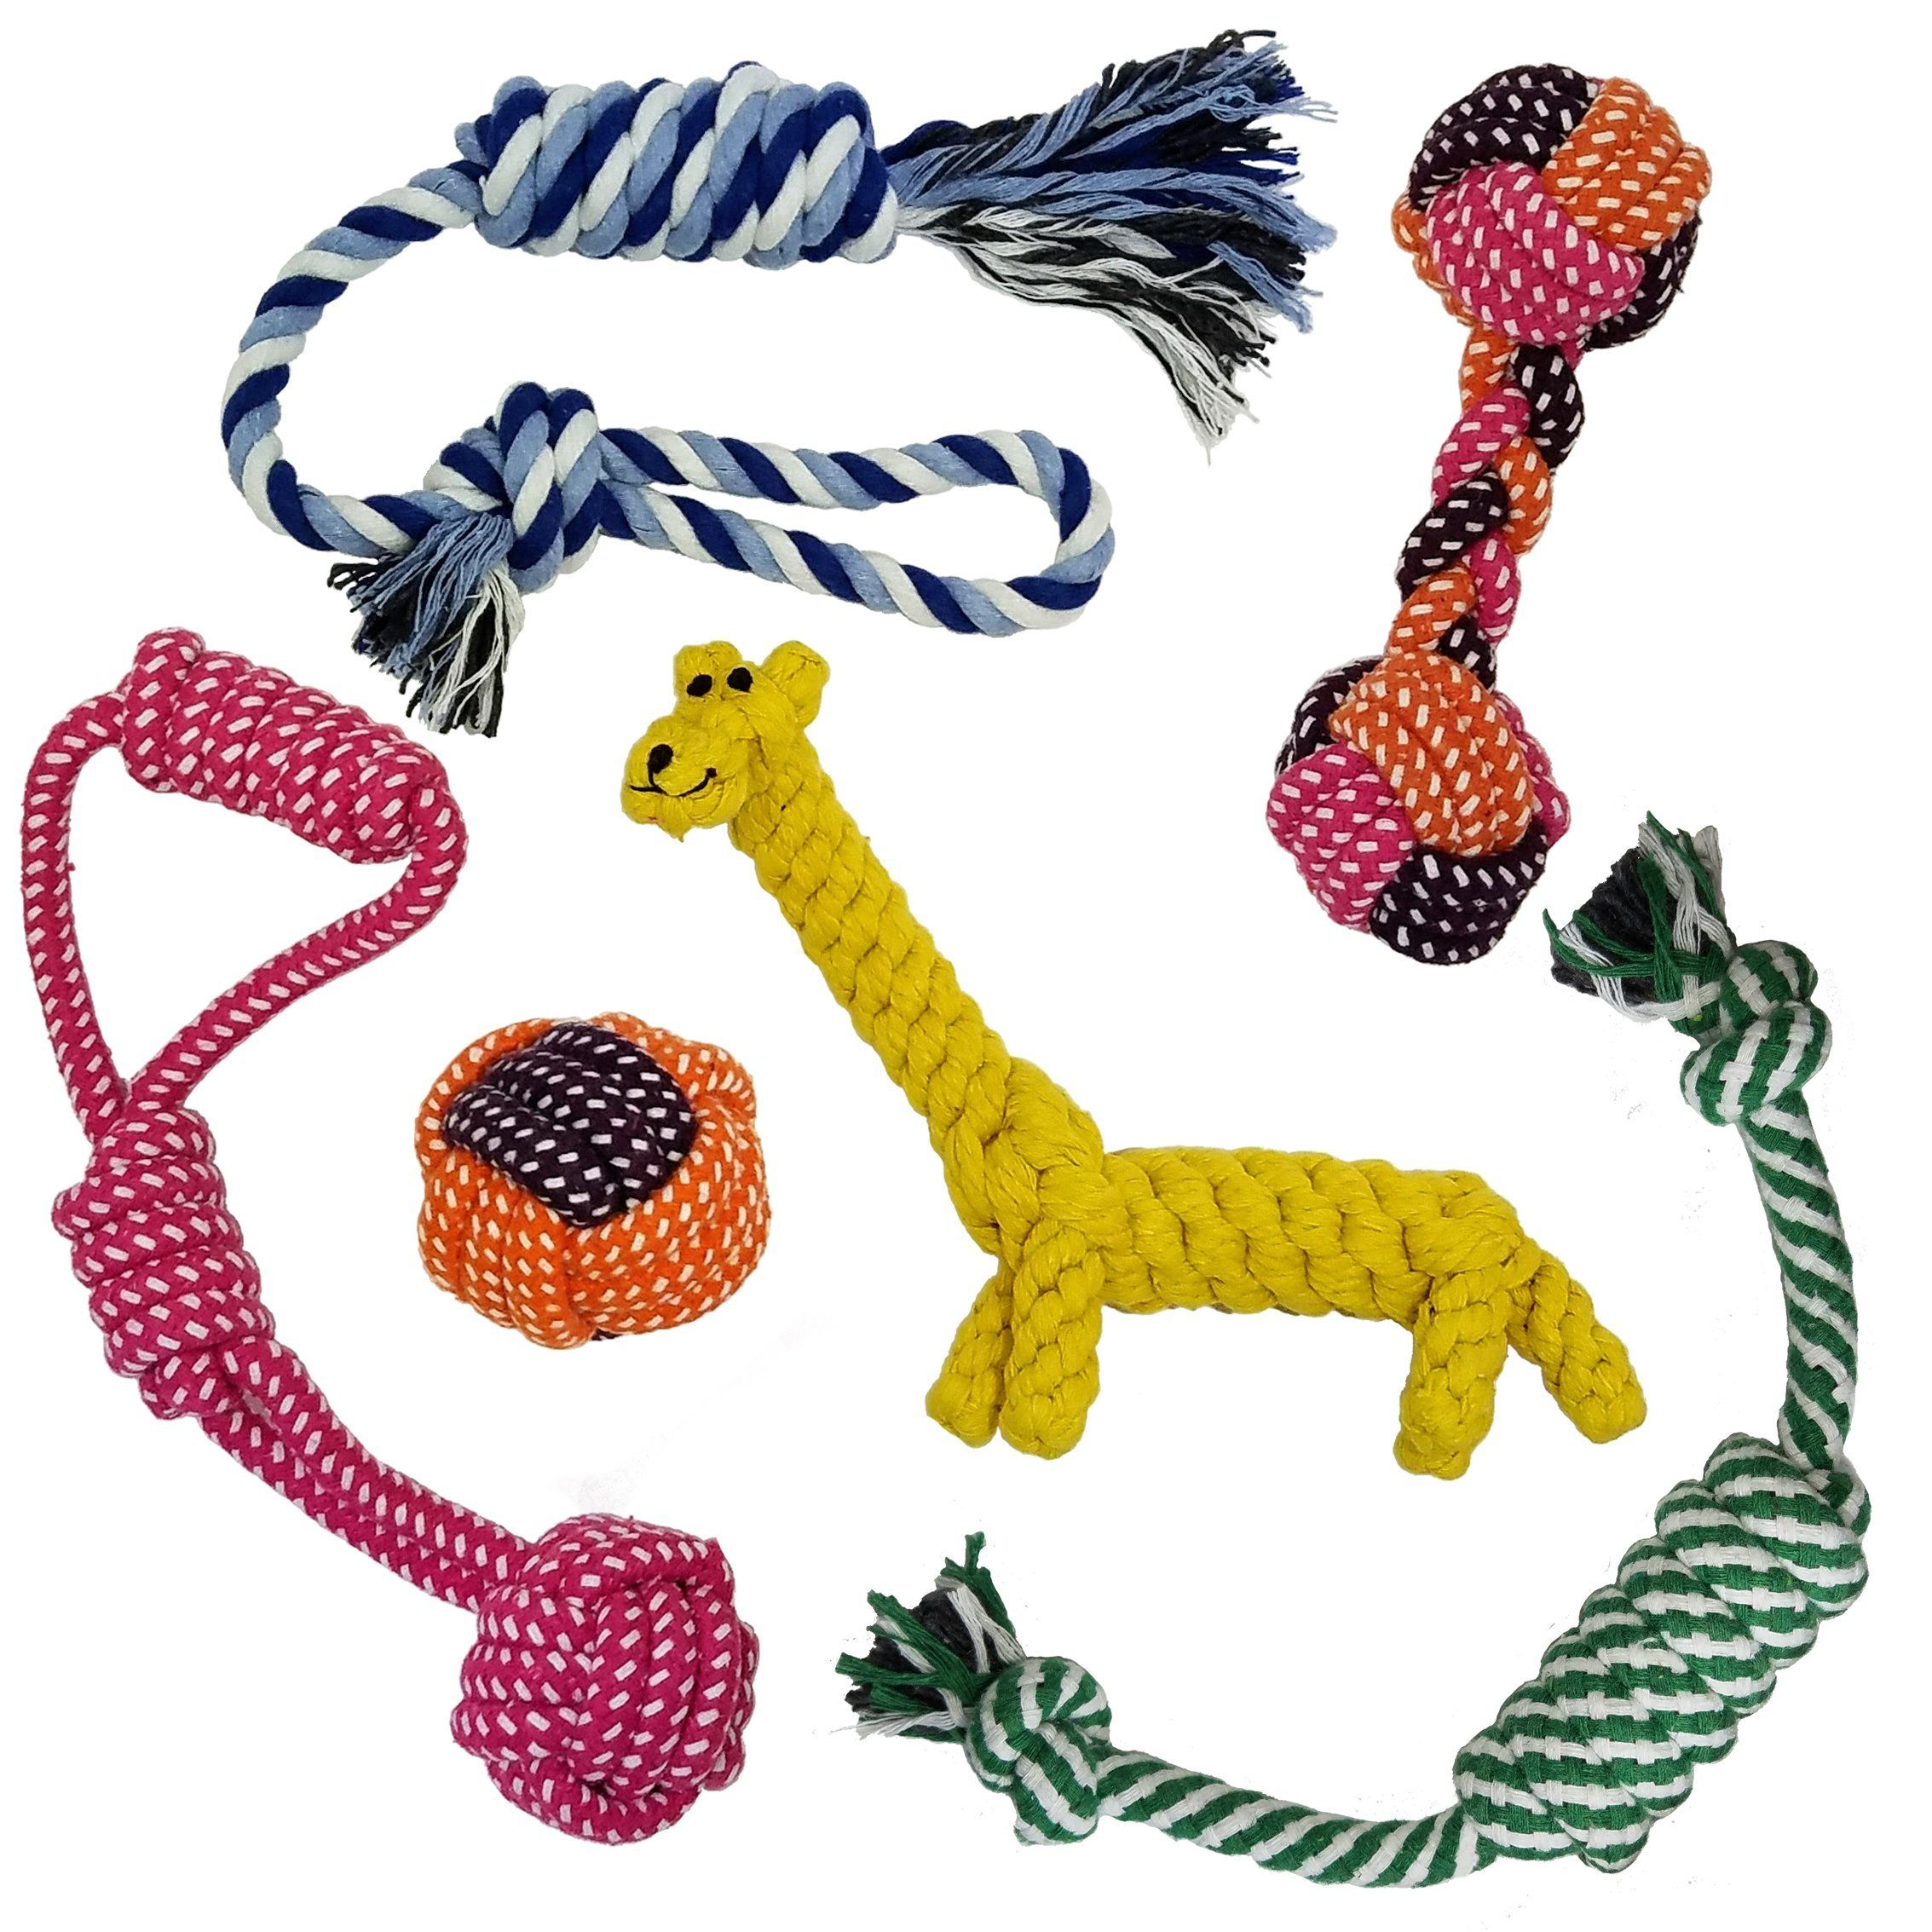 Rope Dog Toys By Leo Pets 6 Pack For Puppies Small To Medium Dogs